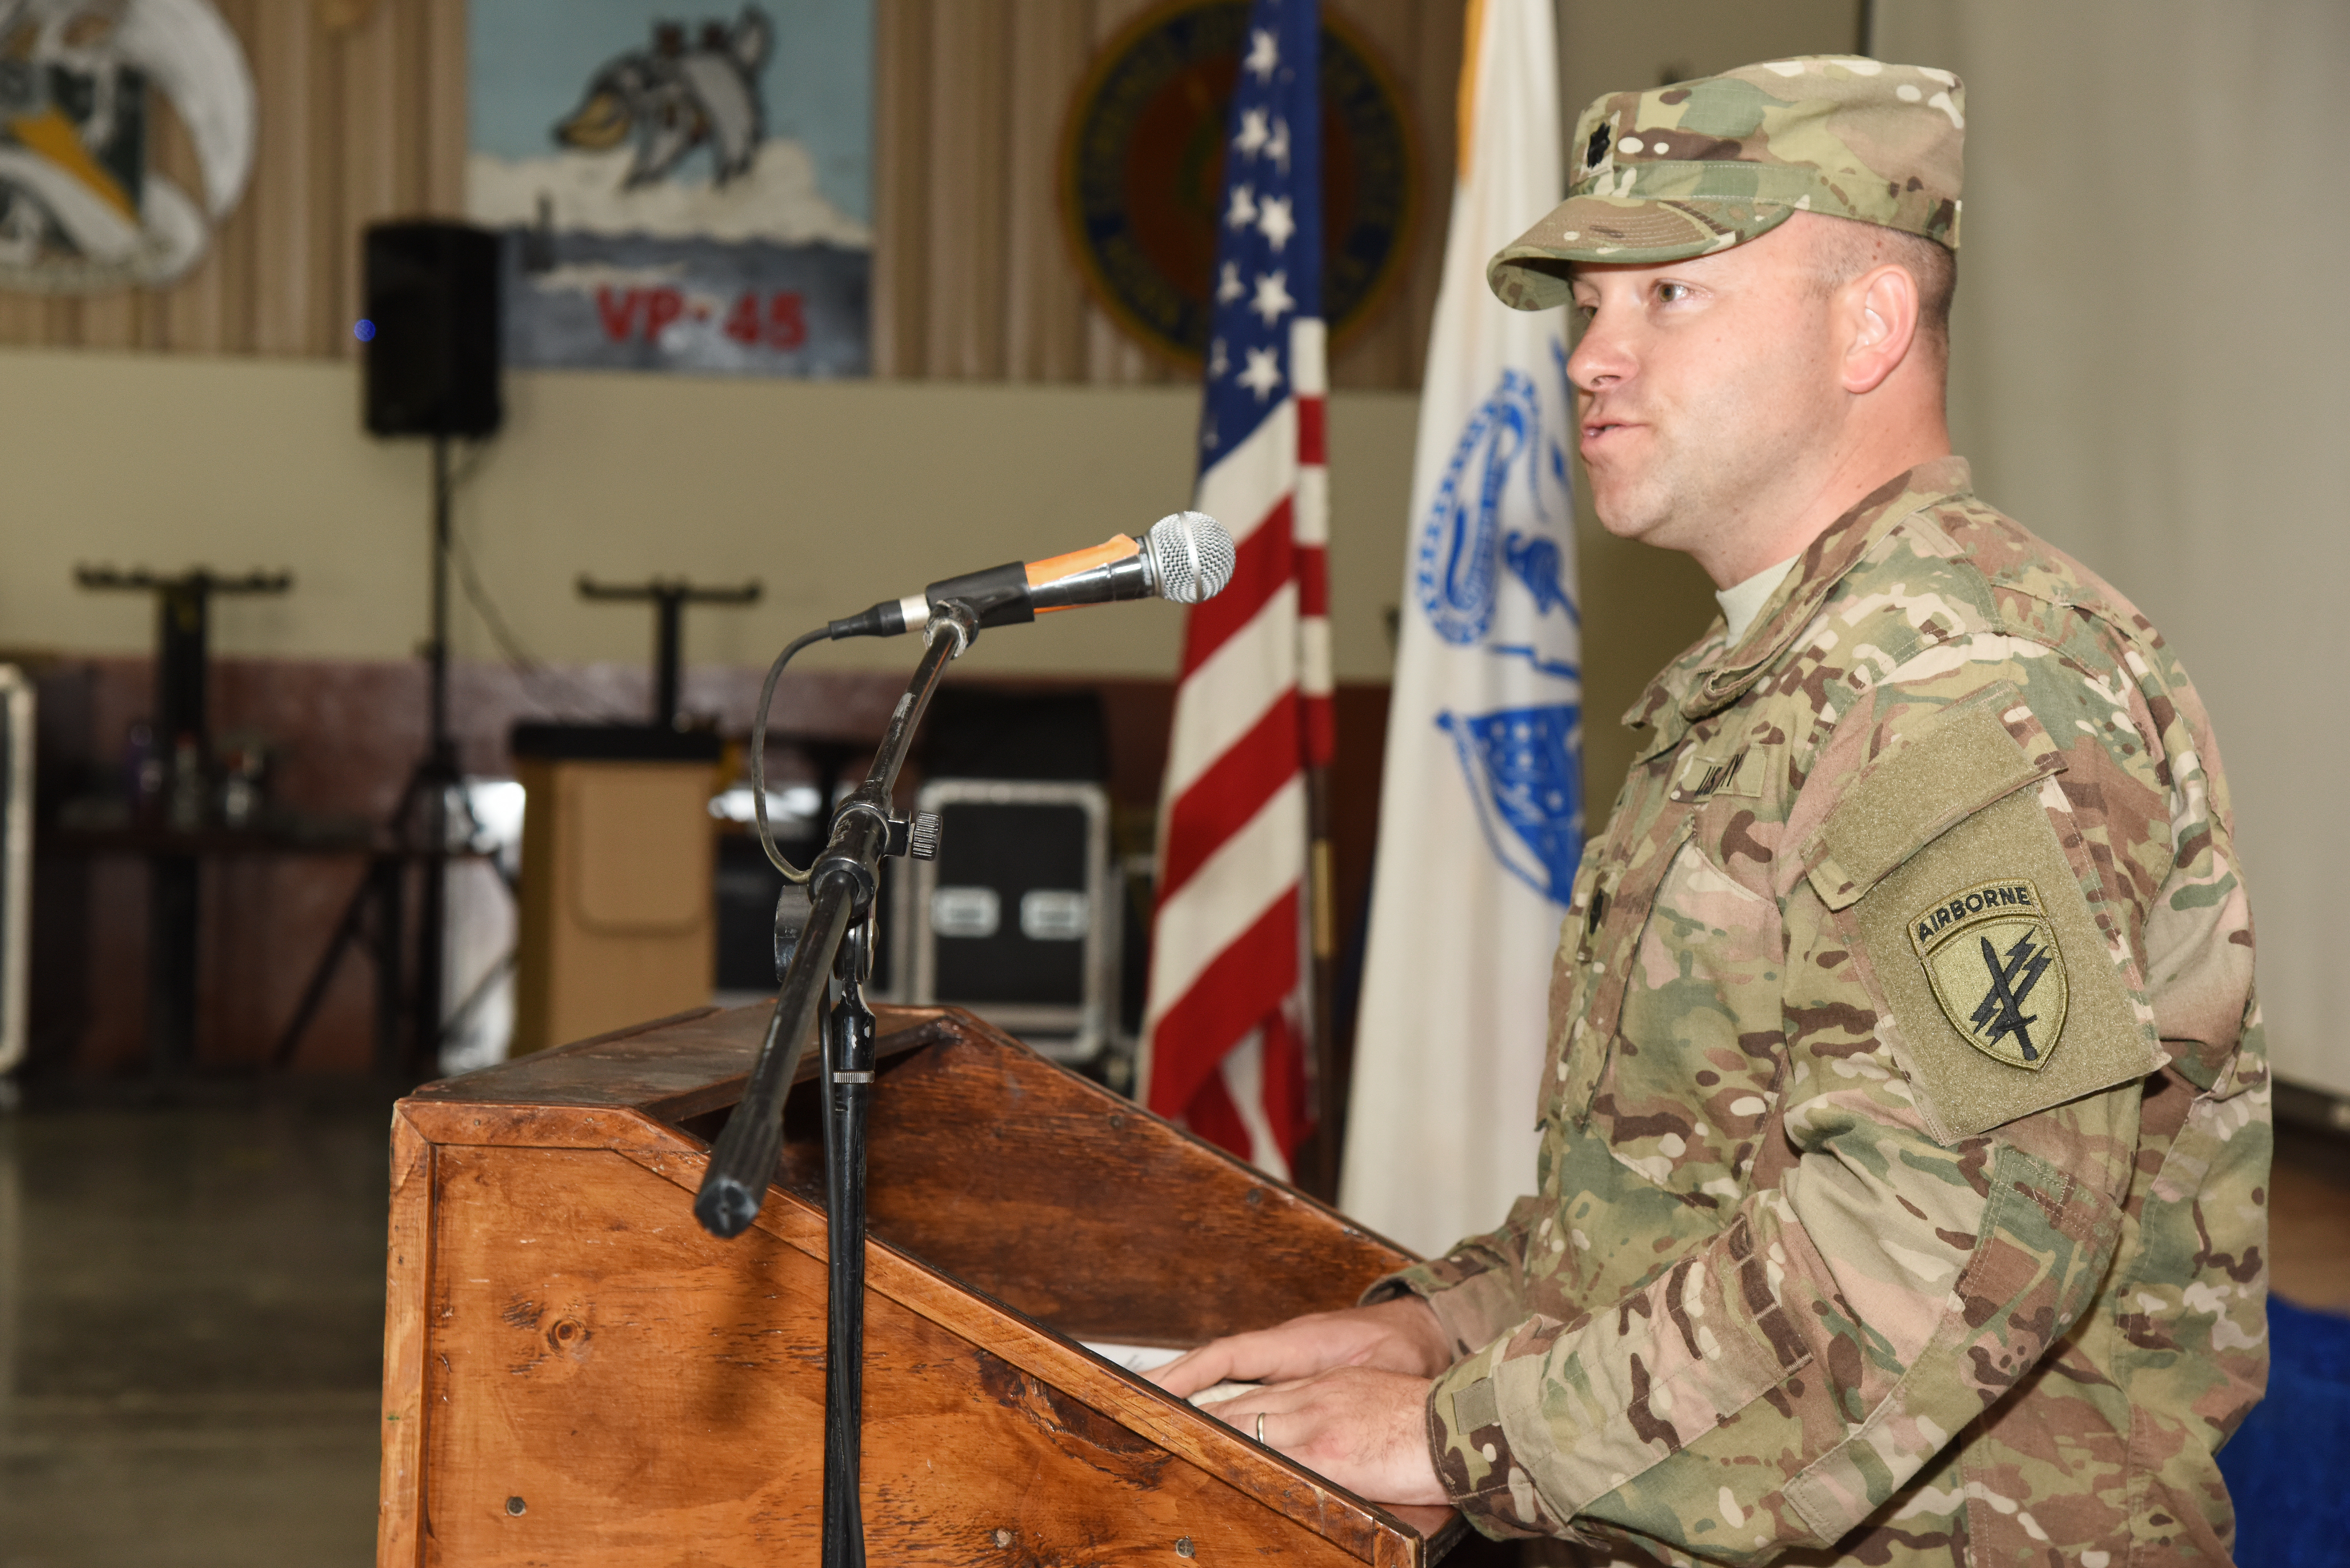 U.S. Army Lt. Col. Gerry Dolan, 415th Civil Affairs Battalion commander, addresses soldiers at a transfer of authority ceremony June 22, 2015, in Djibouti.  The 415th CAB soldiers will take over the responsibilities and tasks that the outgoing CAB performed during their time assigned to Combined Joint Task Force-Horn of Africa.  (U.S. Air Force photo by Staff Sgt. Maria Bowman)